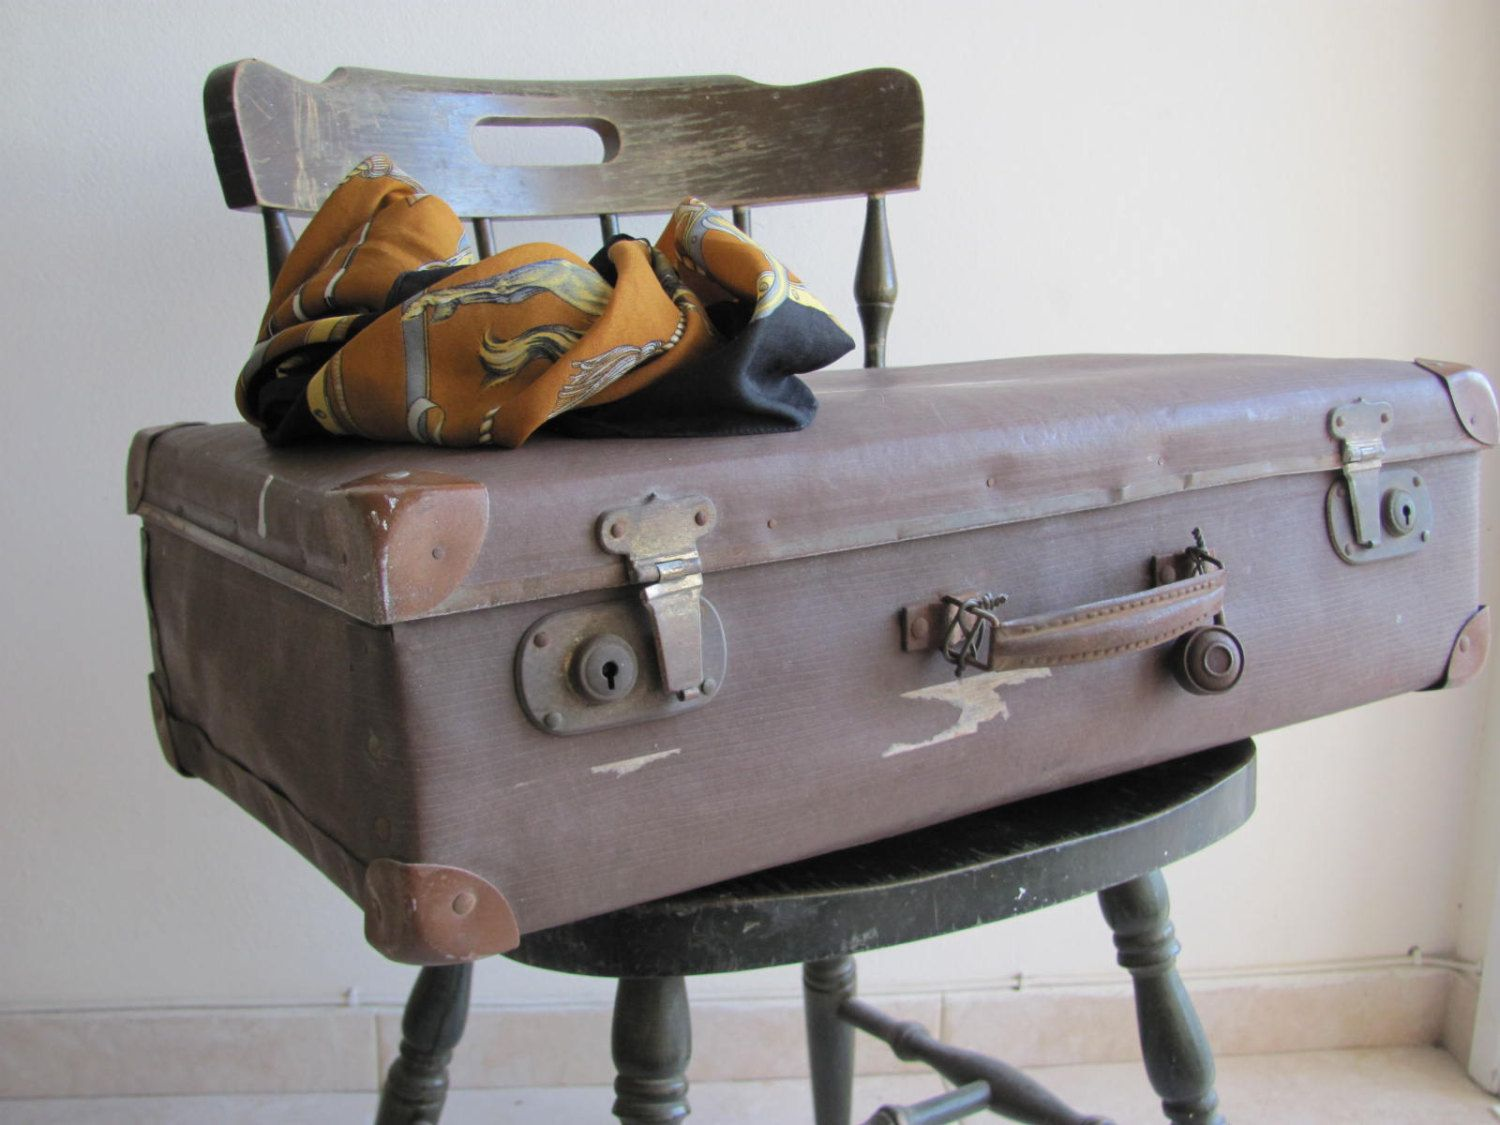 Antique Old Vintage Suitcase Luggage 1930 S Brown Travel Decor Travel Bag Retro Home Decor